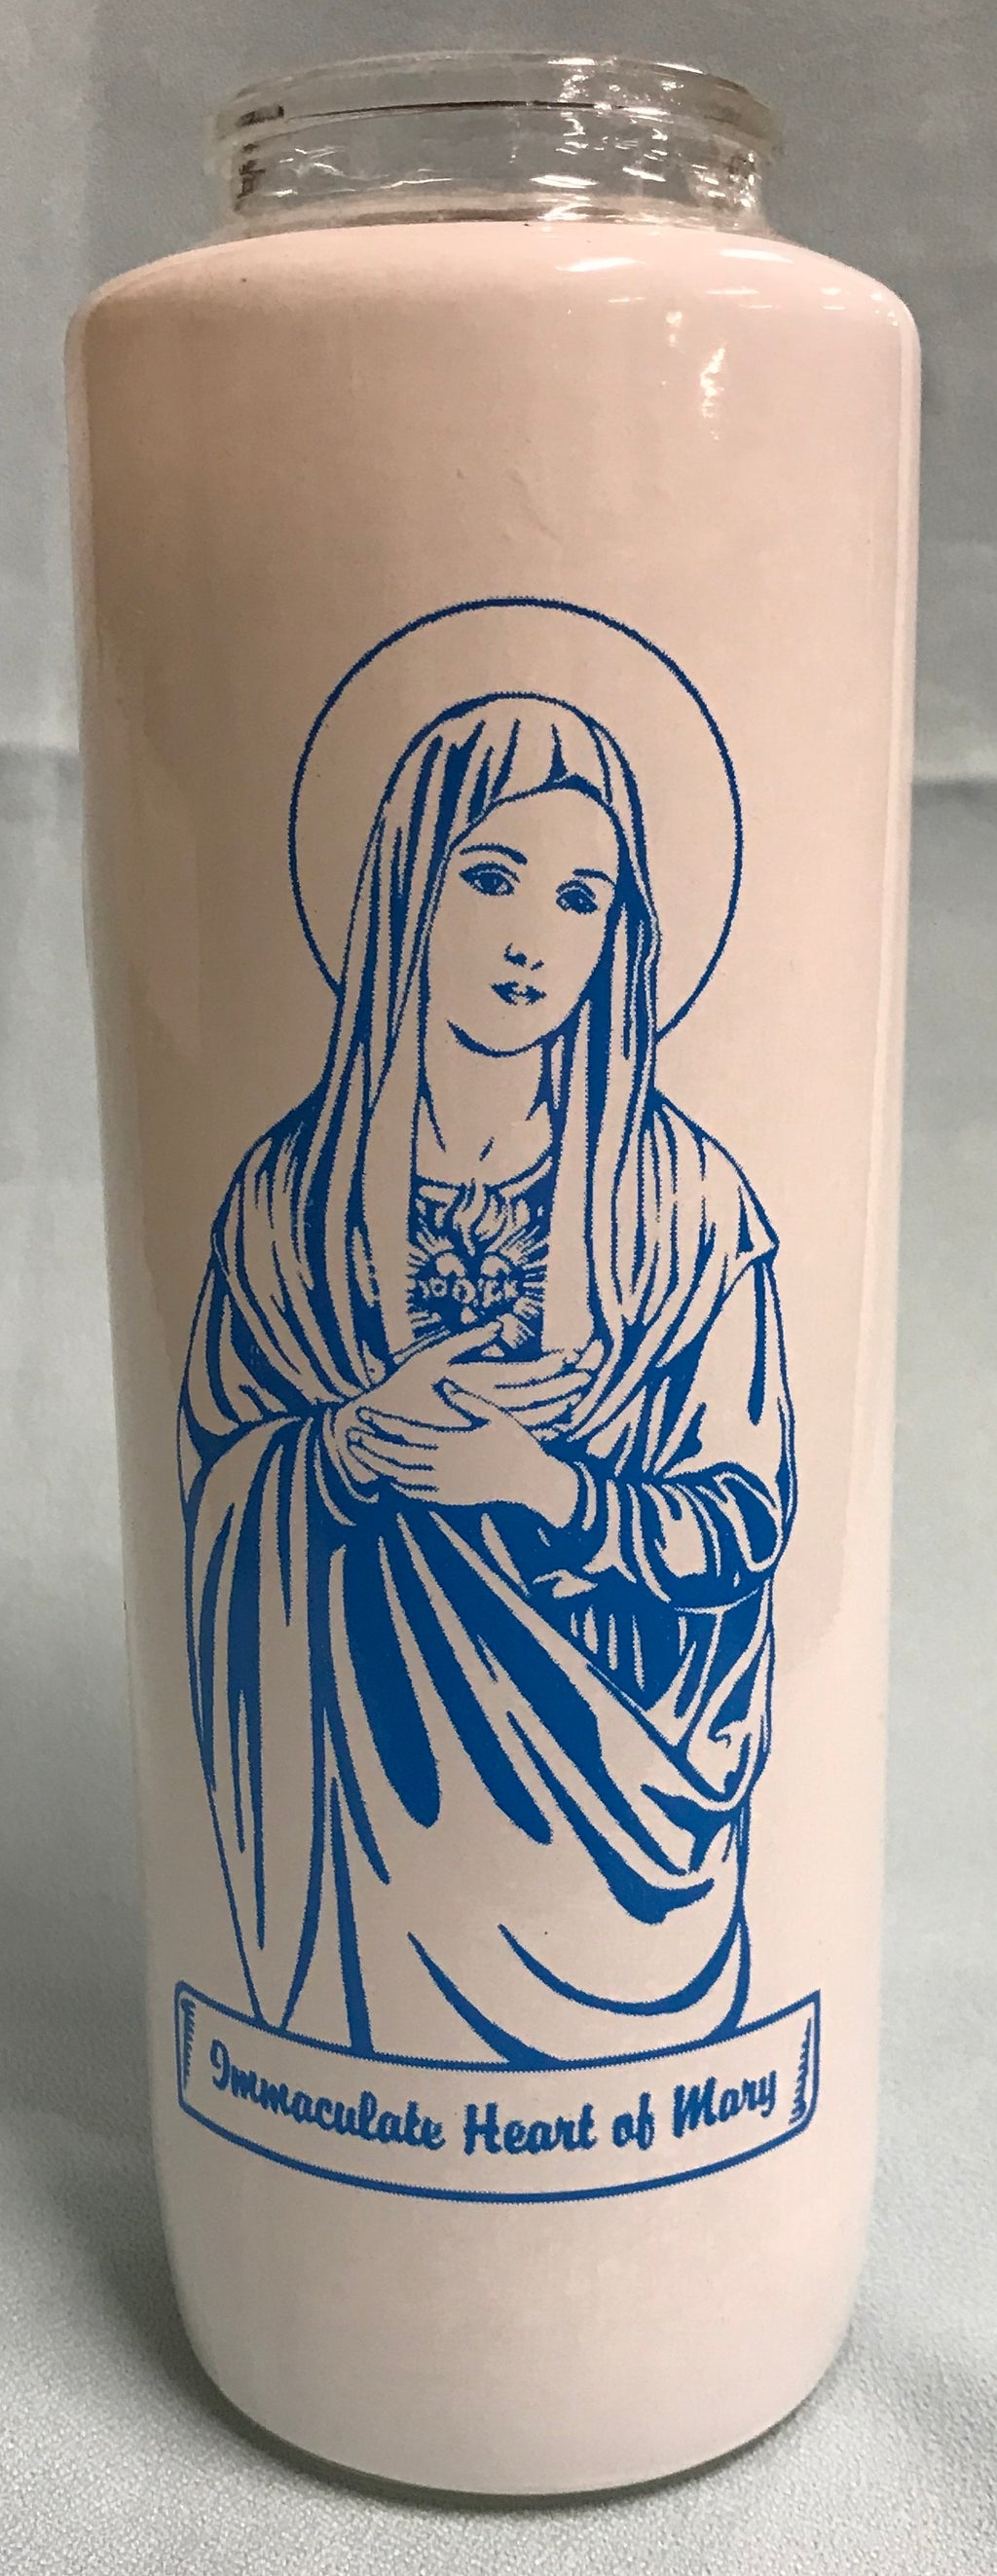 6-DAY IMMACULATE HEART CANDLE